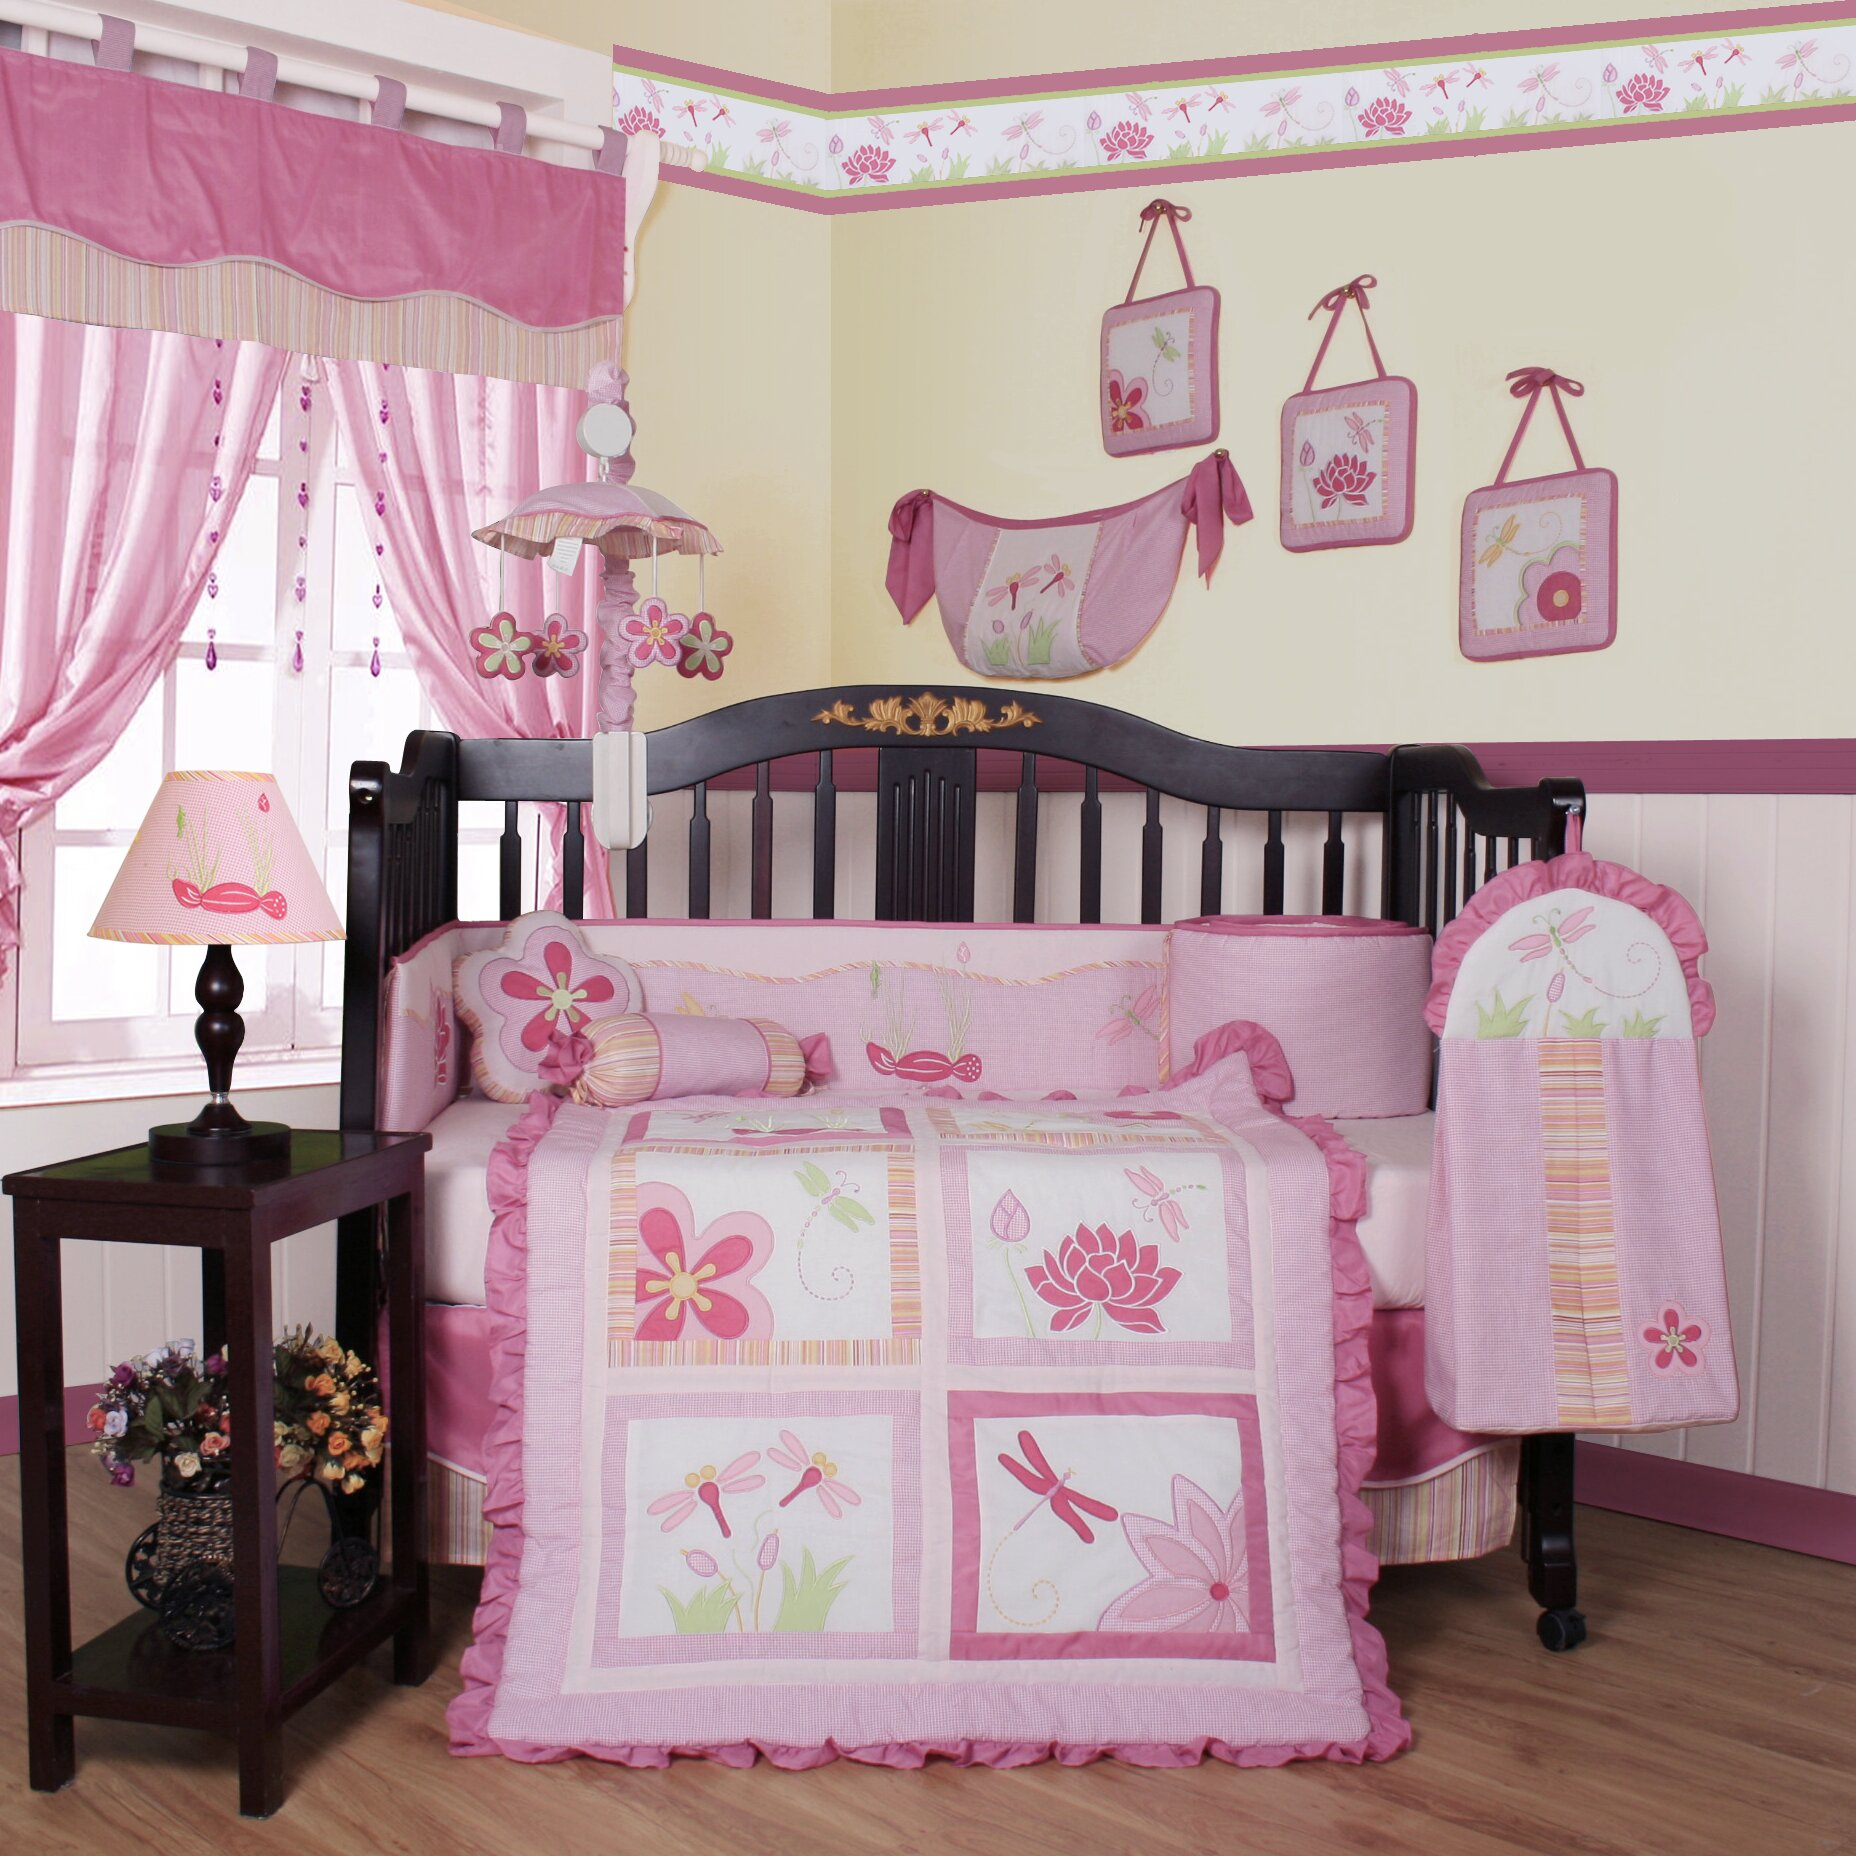 Geenny Boutique Dragonfly 13 Piece Crib Bedding Set